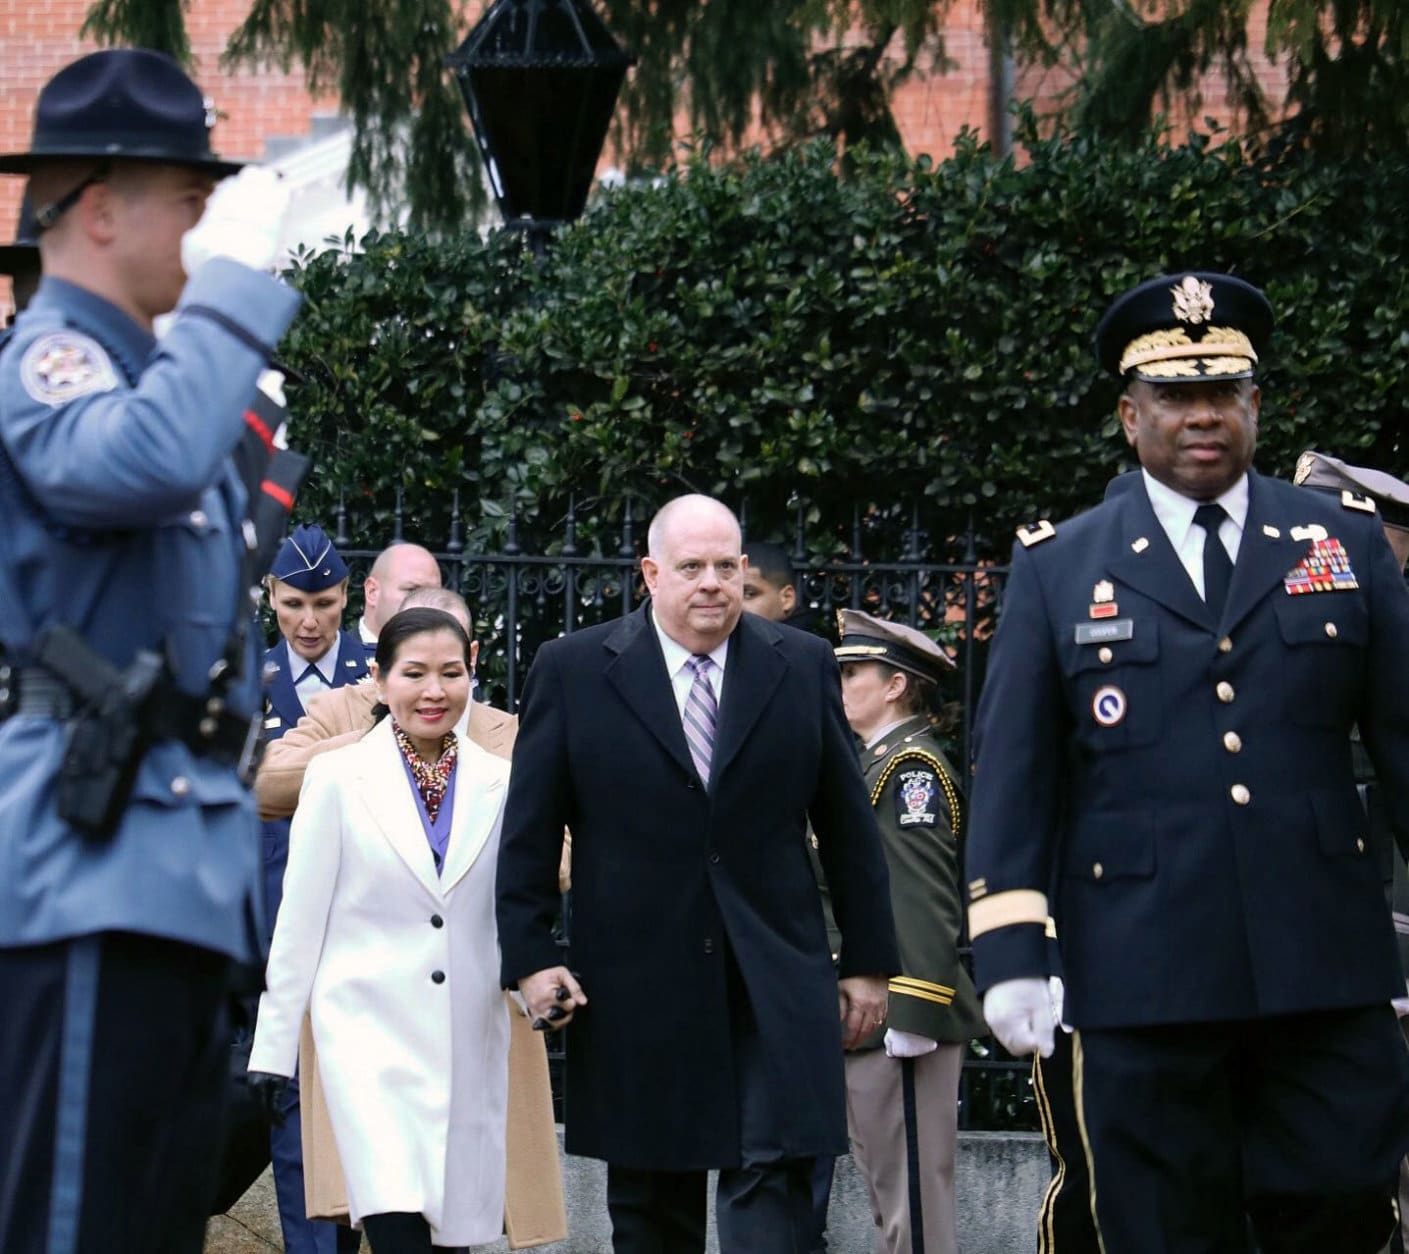 Maryland Gov. Larry Hogan and first lady Yumi Hogan head into the Maryland State House for the swearing-in. (WTOP/Kate Ryan)